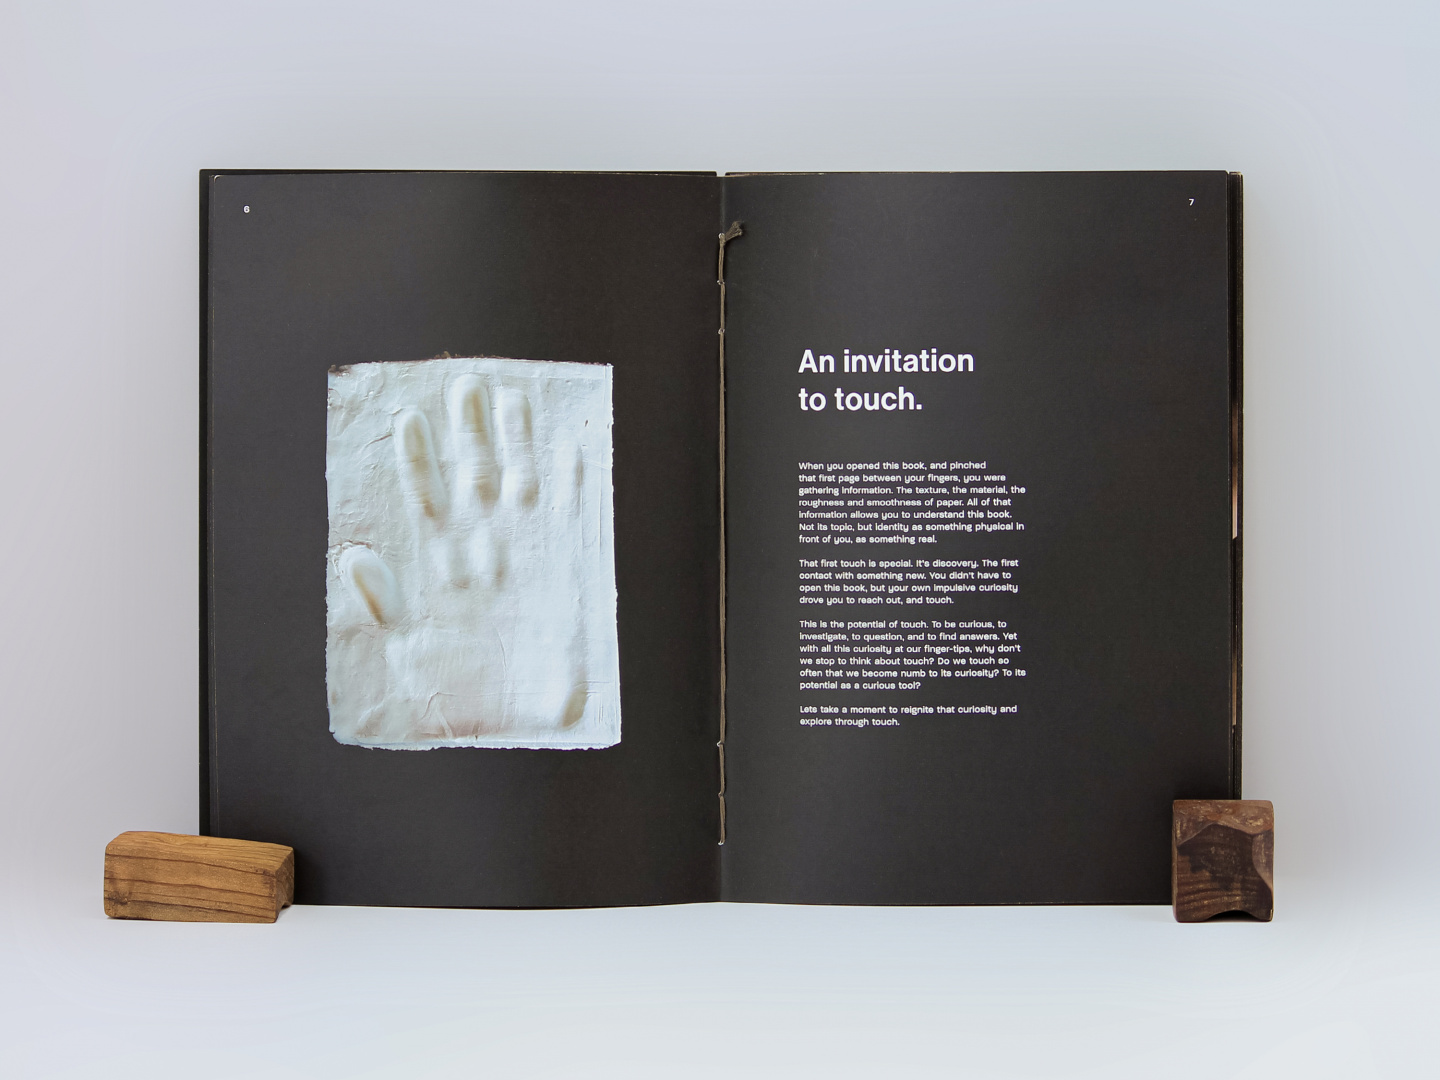 a photo of a book with black pages propped up to face the viewer.